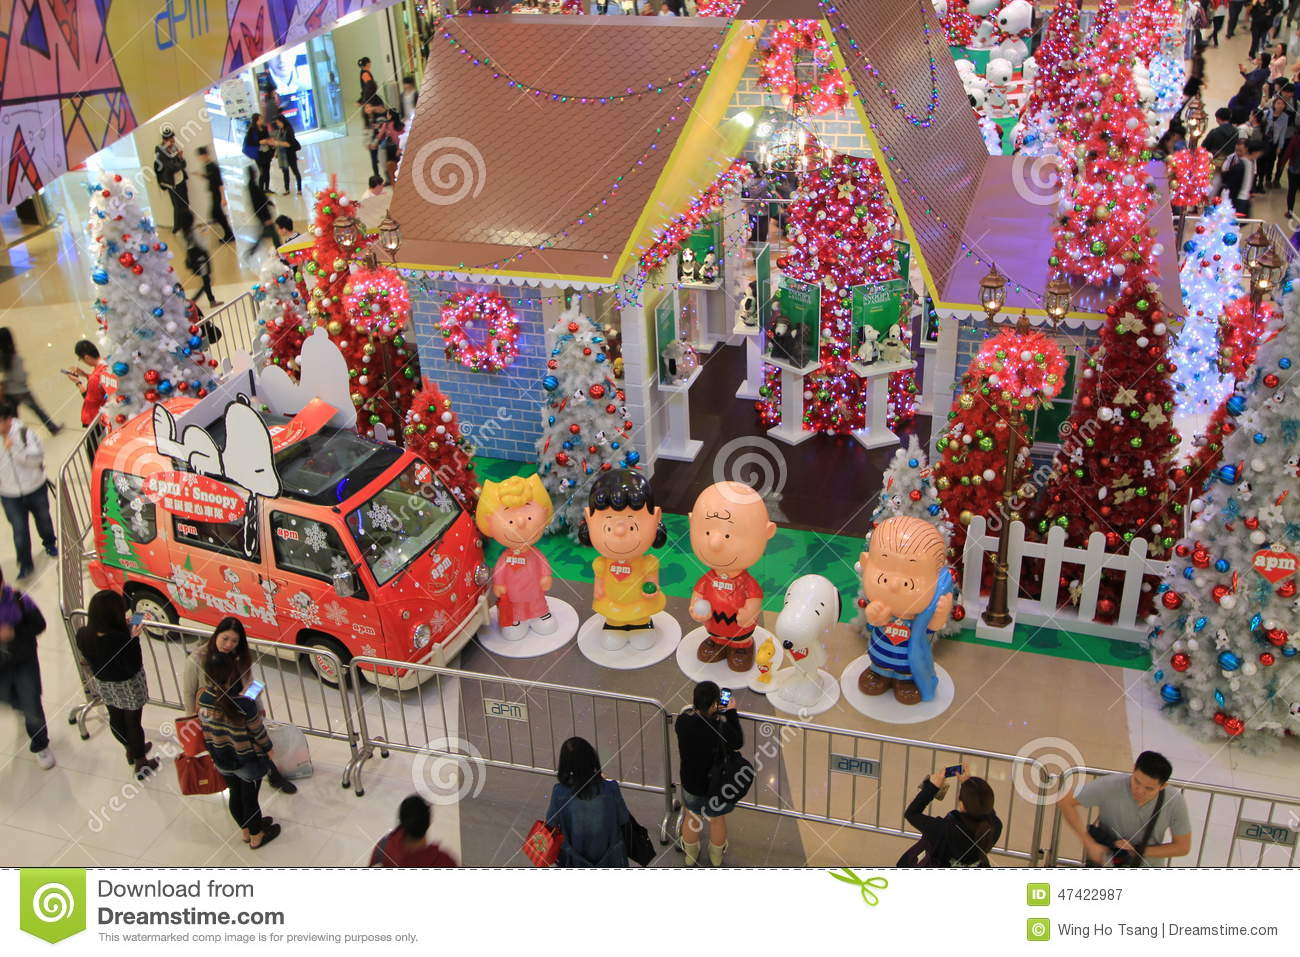 download hong kong snoopy christmas decoration in apm editorial photography image of center ceiling